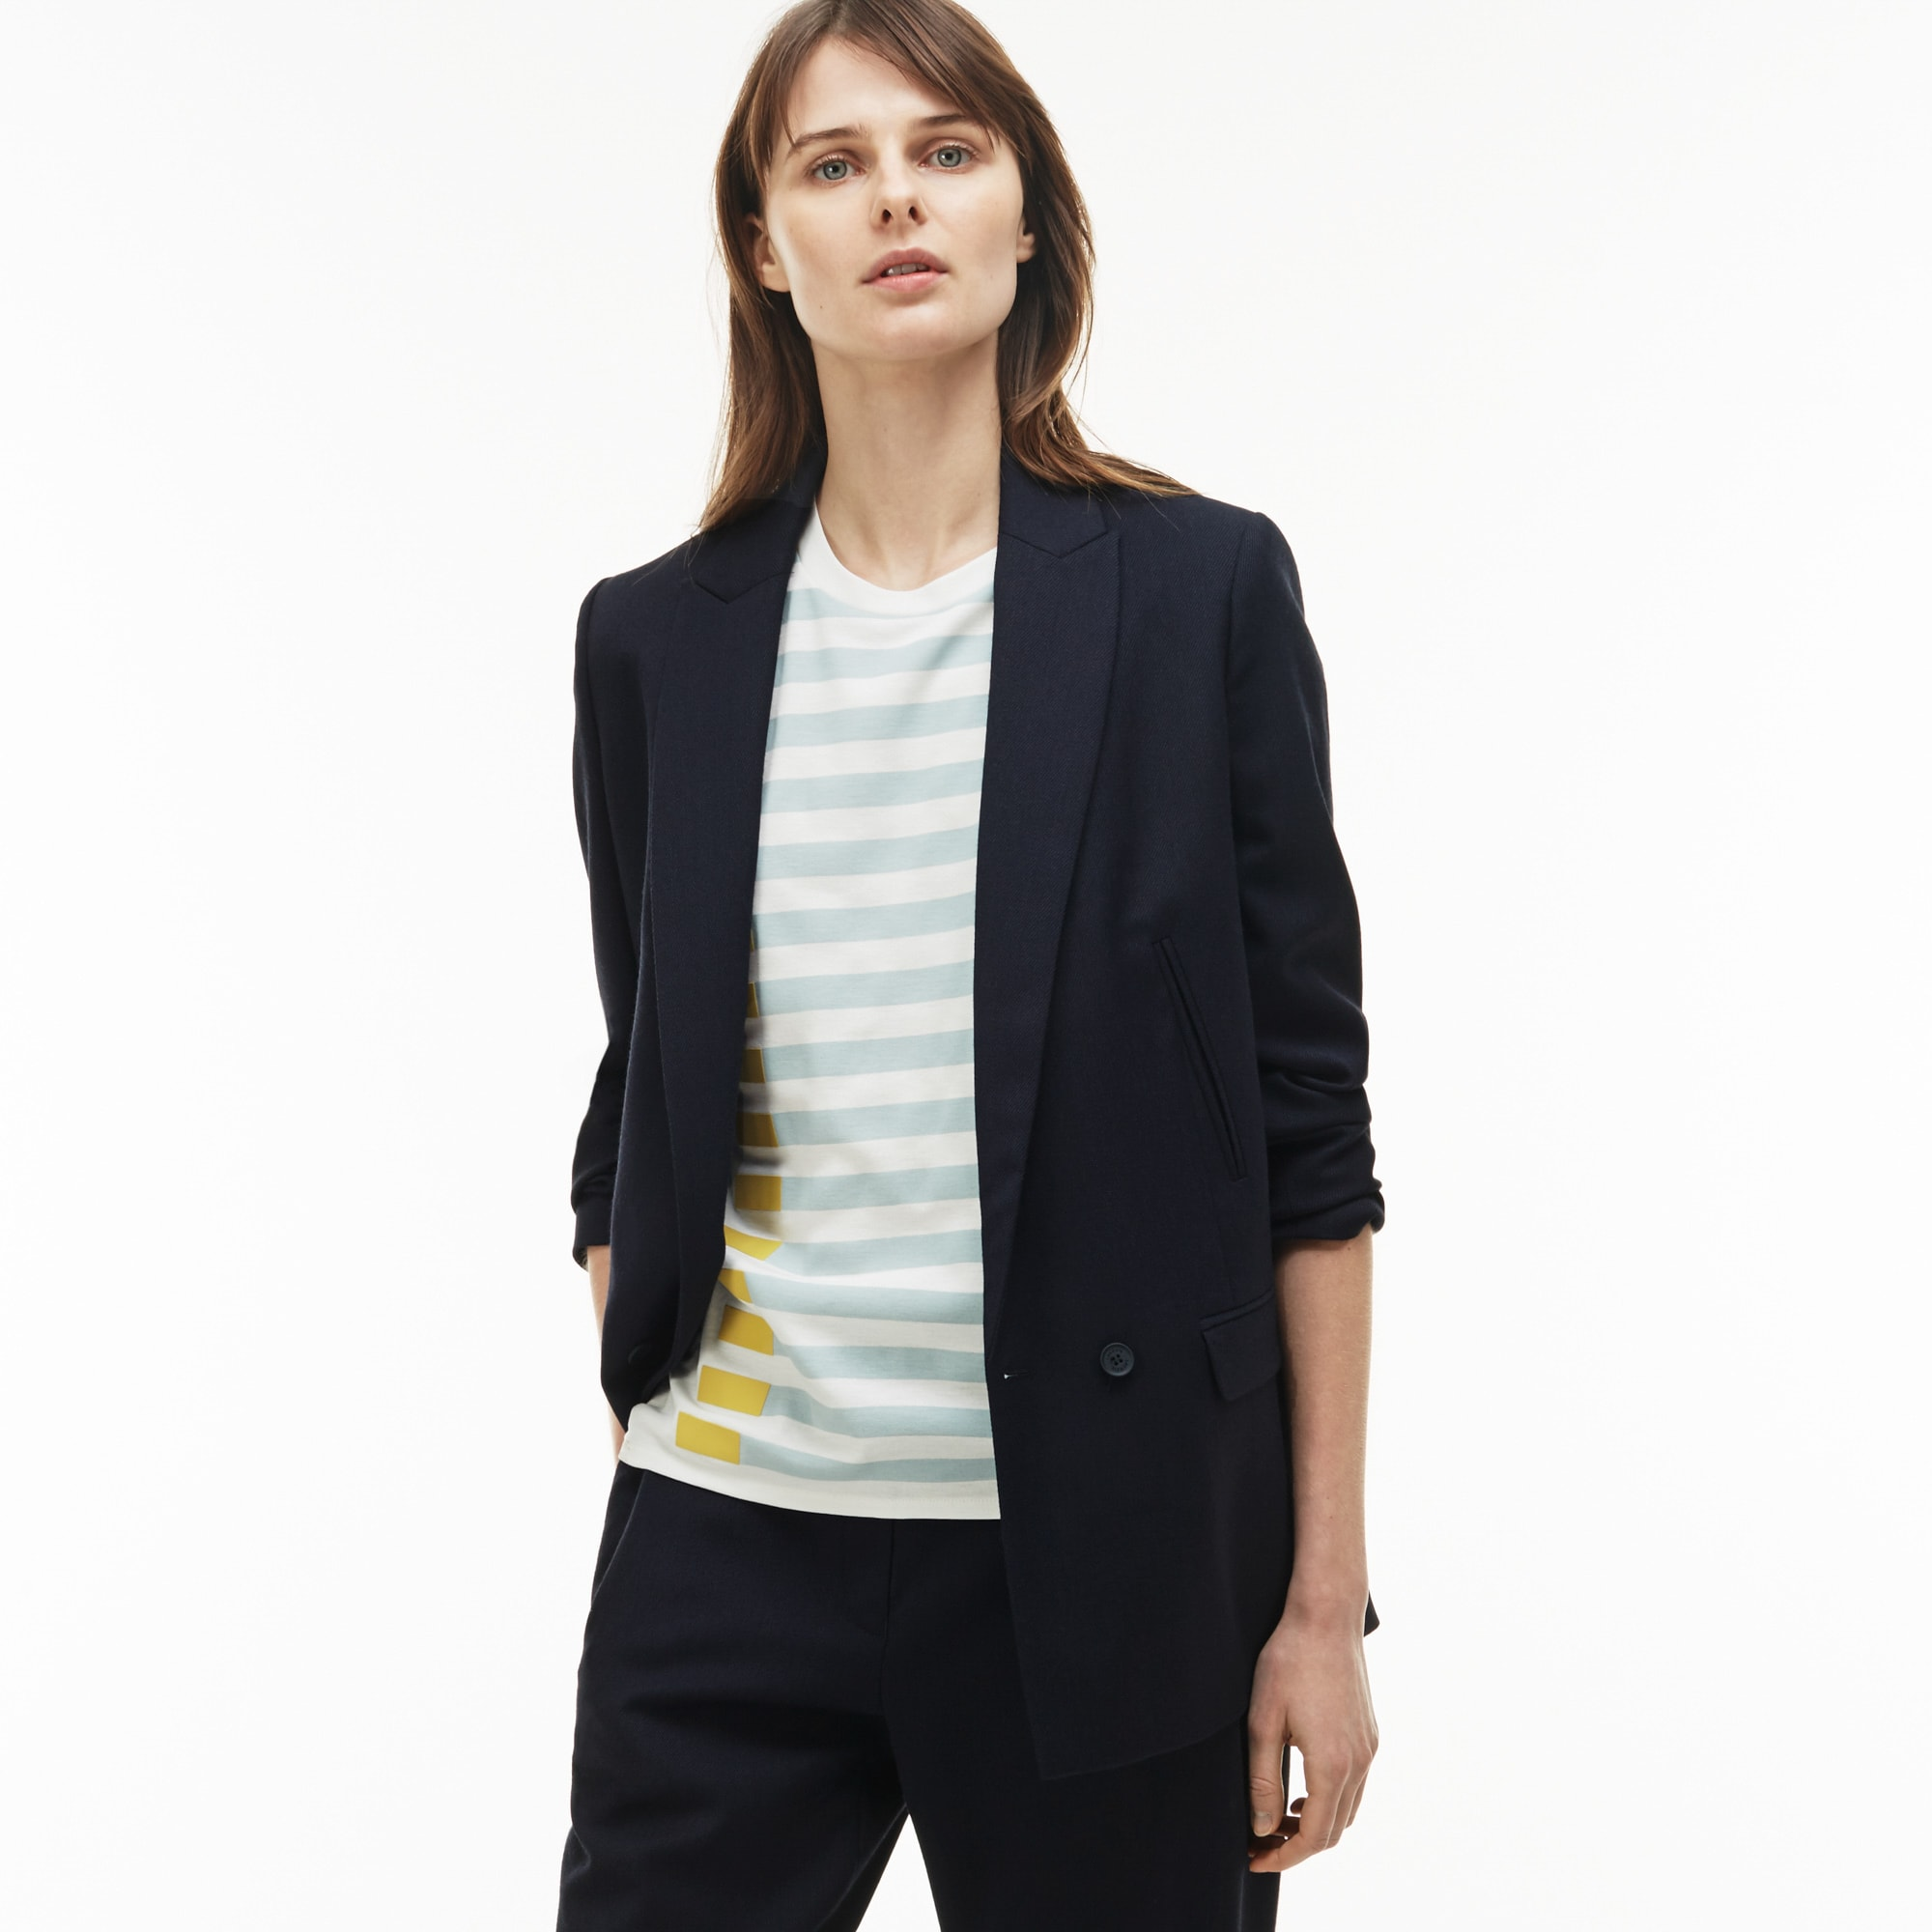 Women'S Straight Cut Buttoned Wool Piqué Jacket in Navy Blue from Lacoste